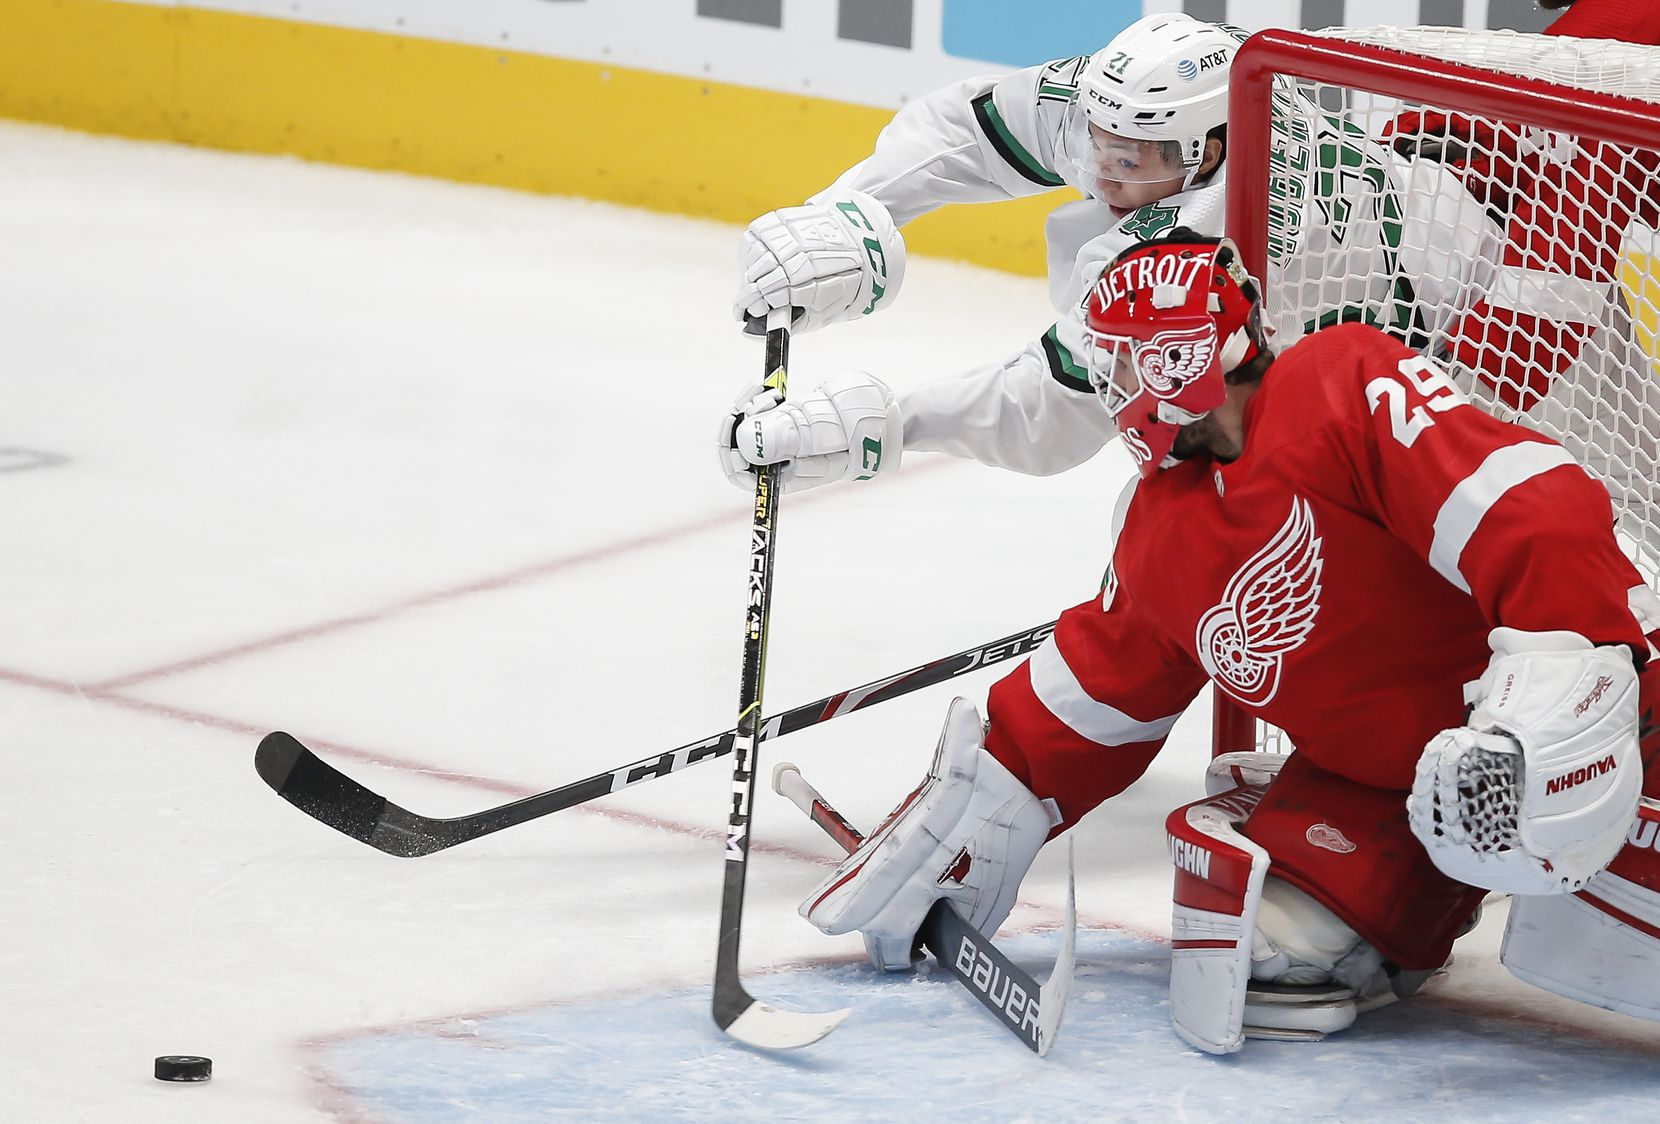 Dallas Stars forward Jason Robertson (21) attempts a wrap-around shot as Detroit Red Wings goaltender Thomas Greiss (29) defends during the third period of an NHL hockey game in Dallas, Monday, April 19, 2021. Dallas won 3-2 in a shootout. (Brandon Wade/Special Contributor)